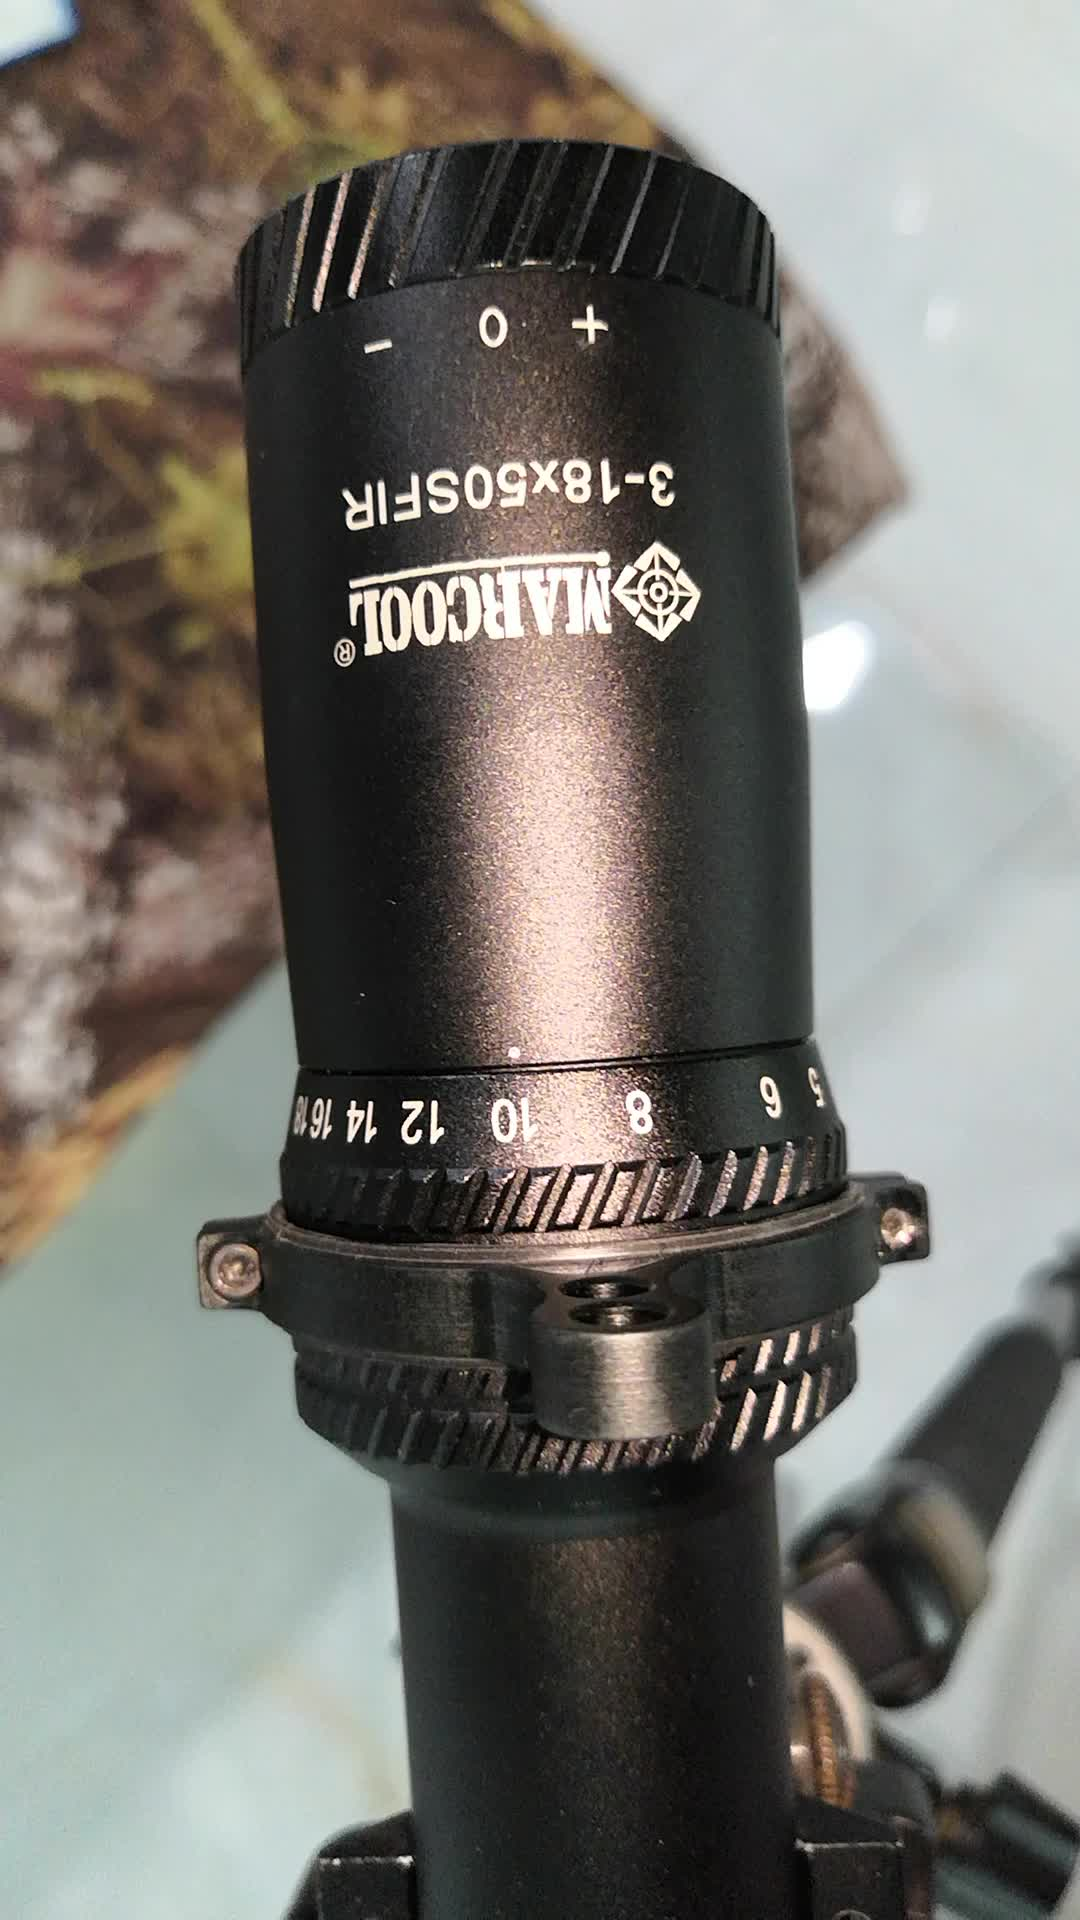 Marcool 3-18x50 tactical riflescope for military, gun weapon sight with 7.62 caliber